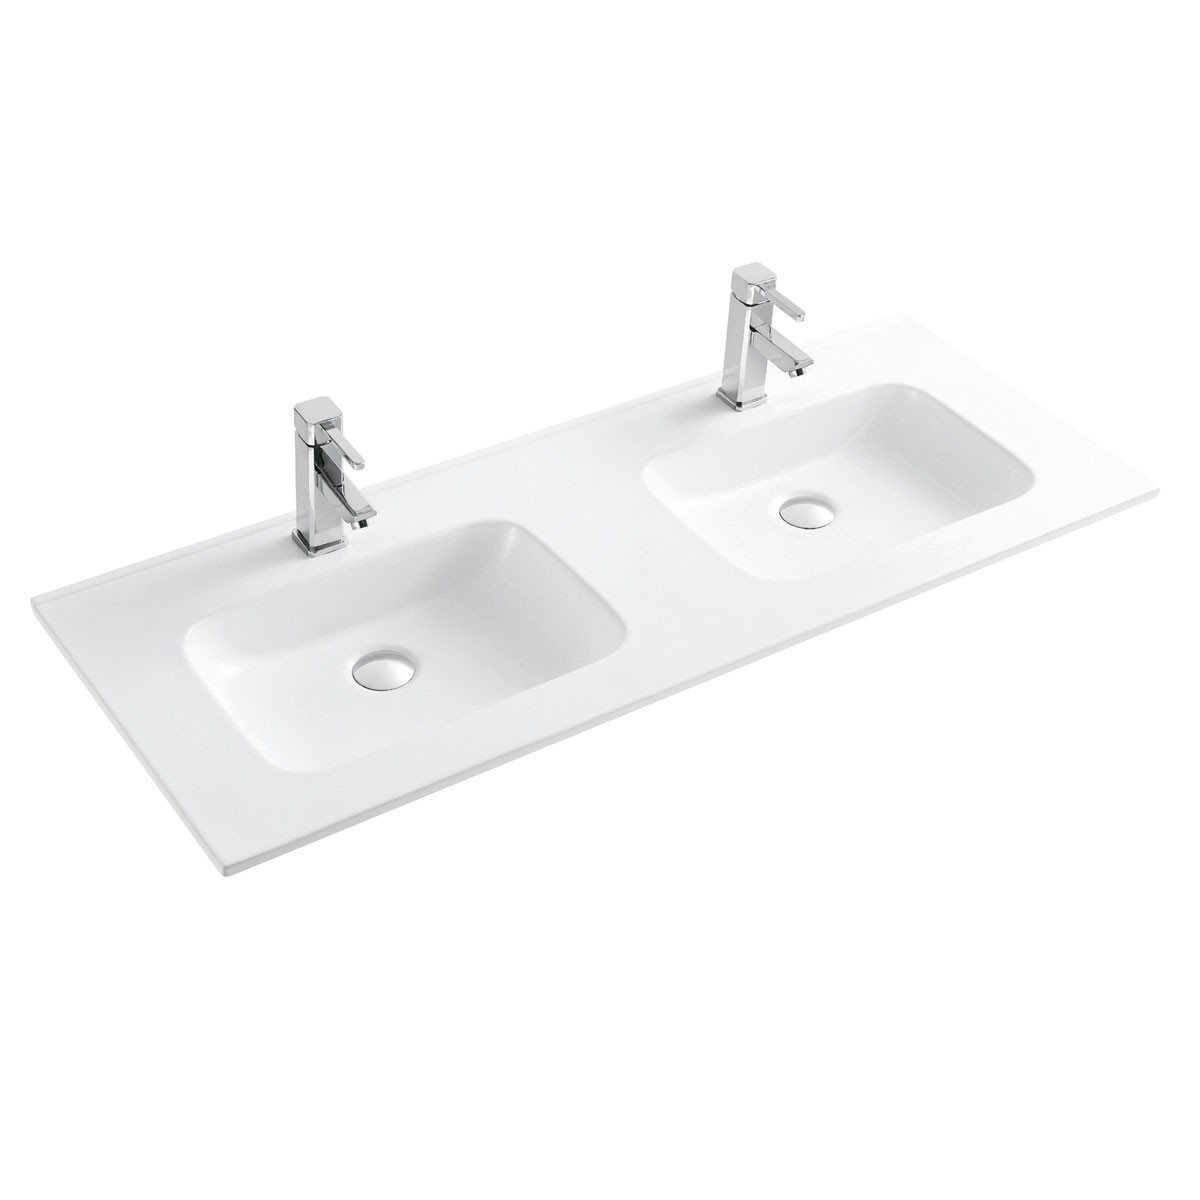 White Rectangle Ceramic Bathroom Vanity Basin (CL-4108D-120)